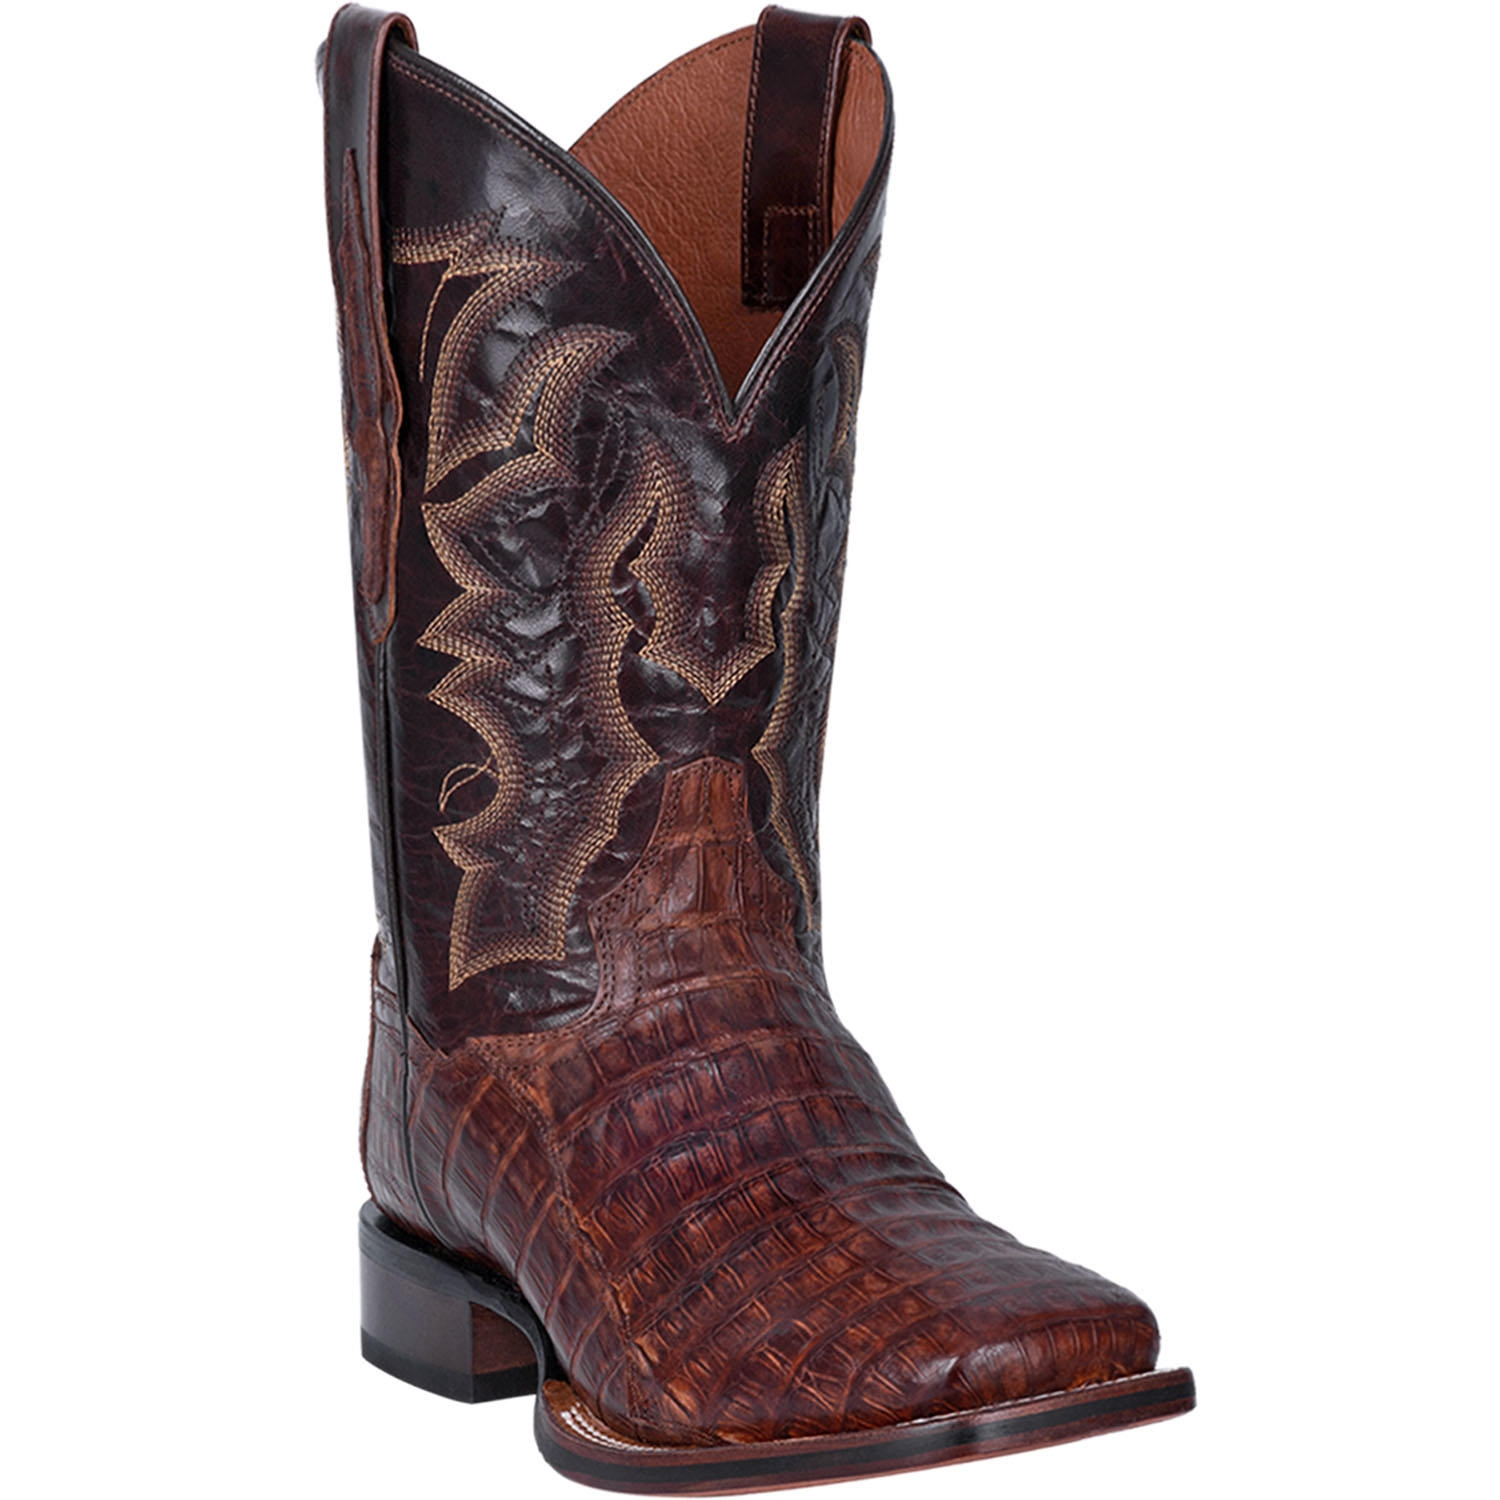 Dan Post Kingsly - Mens Cowboy Boots